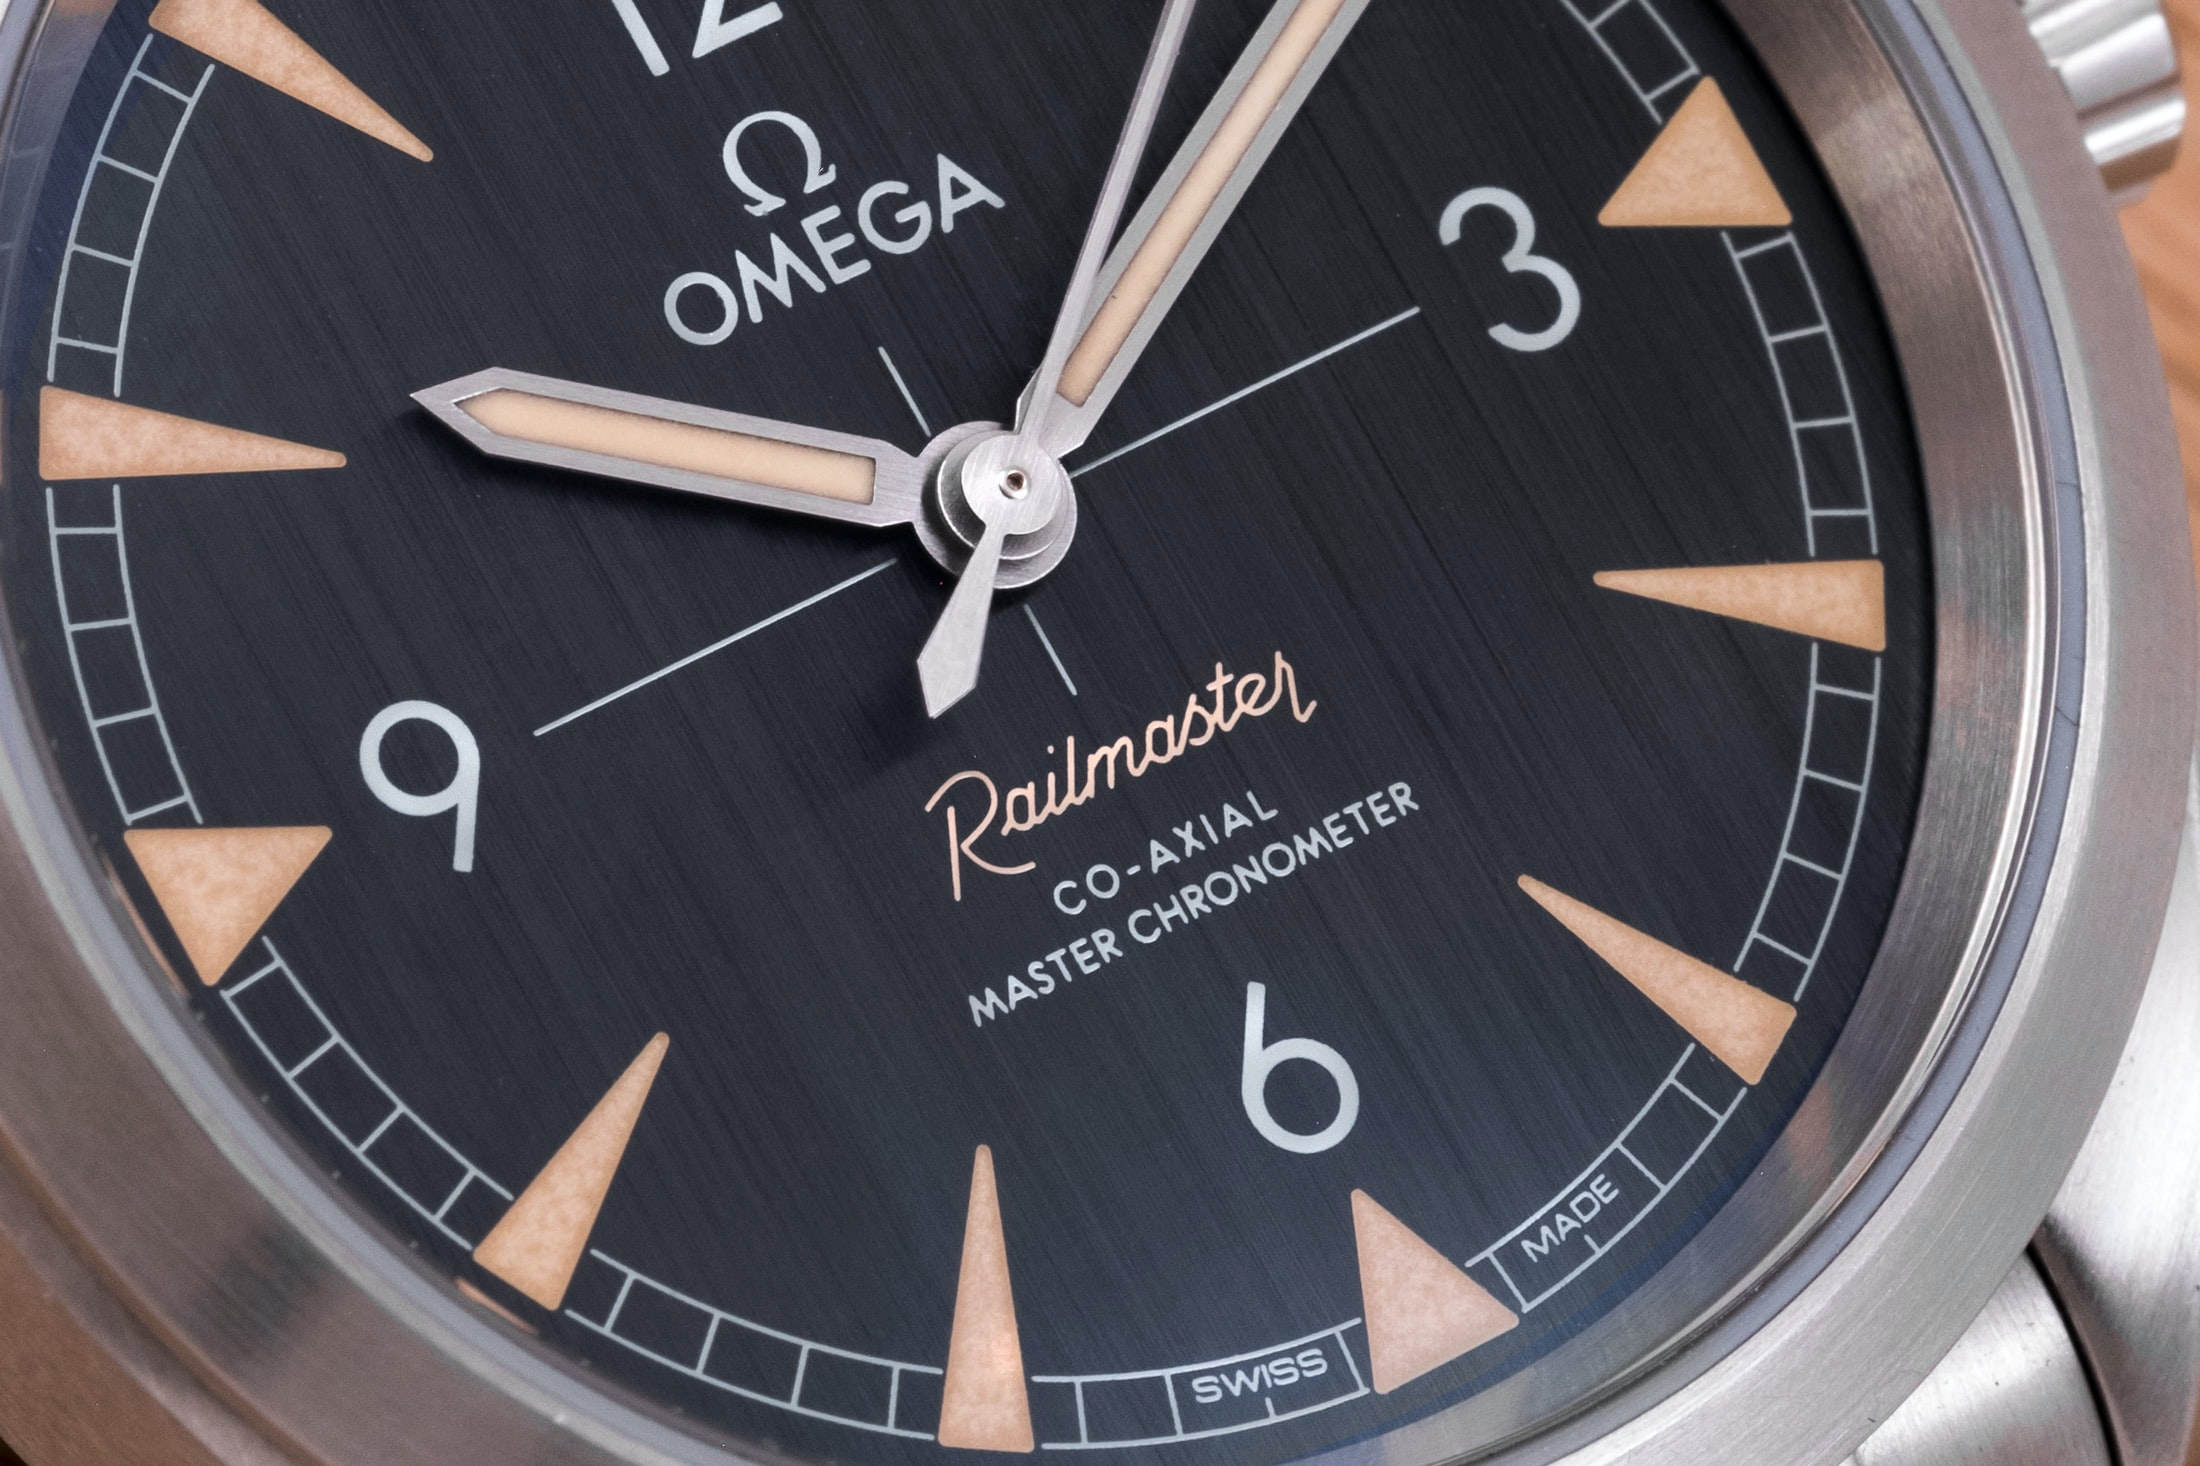 A Week On The Wrist: The Omega Seamaster Railmaster A Week On The Wrist: The Omega Seamaster Railmaster DSCF6104